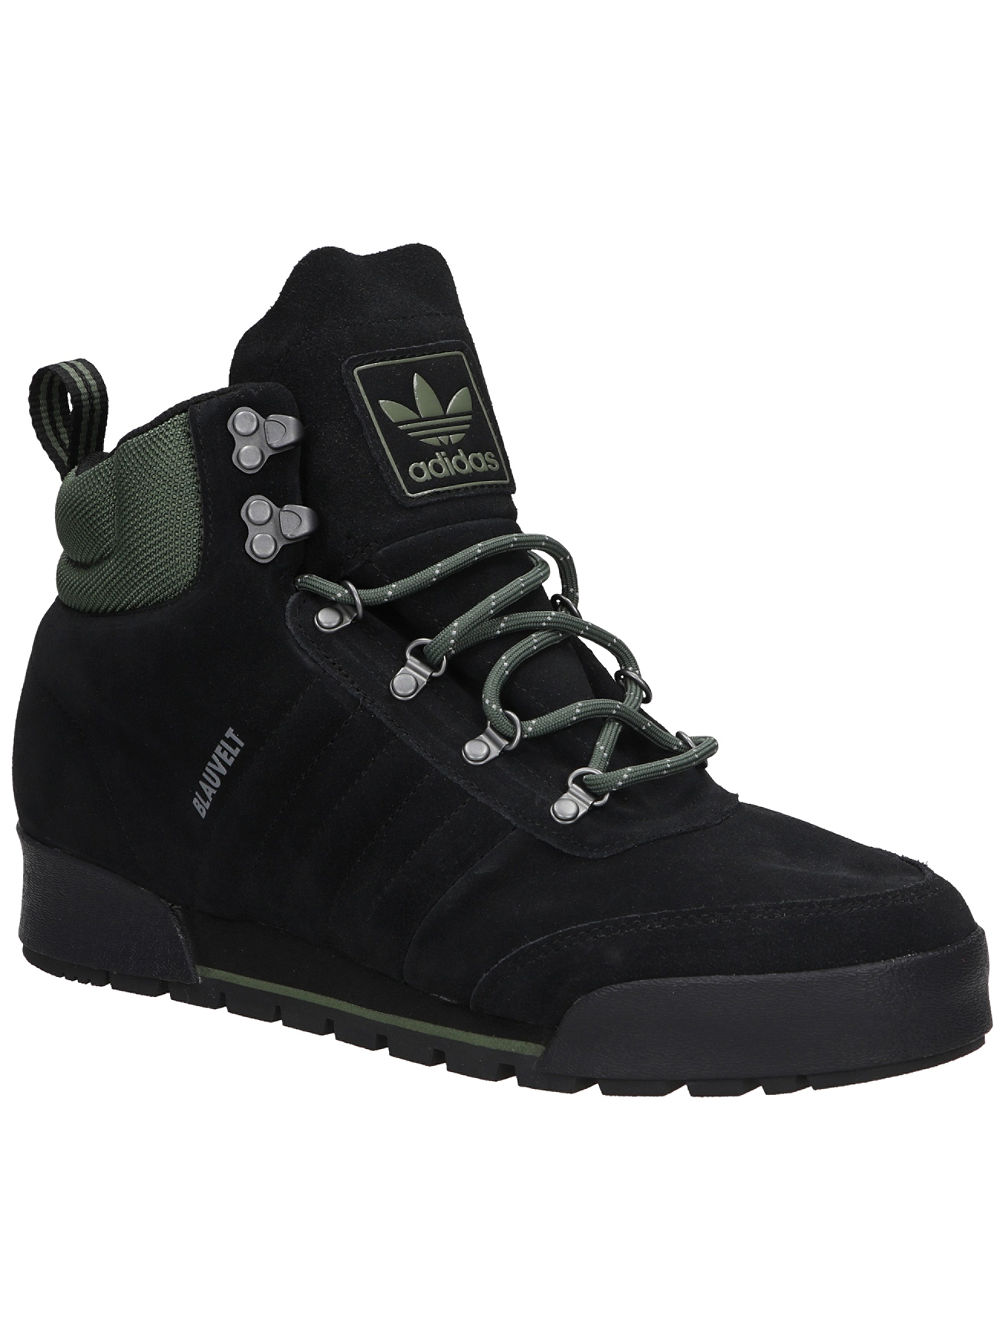 99f581130 Buy adidas Snowboarding Jake Boot 2.0 Shoes online at Blue Tomato